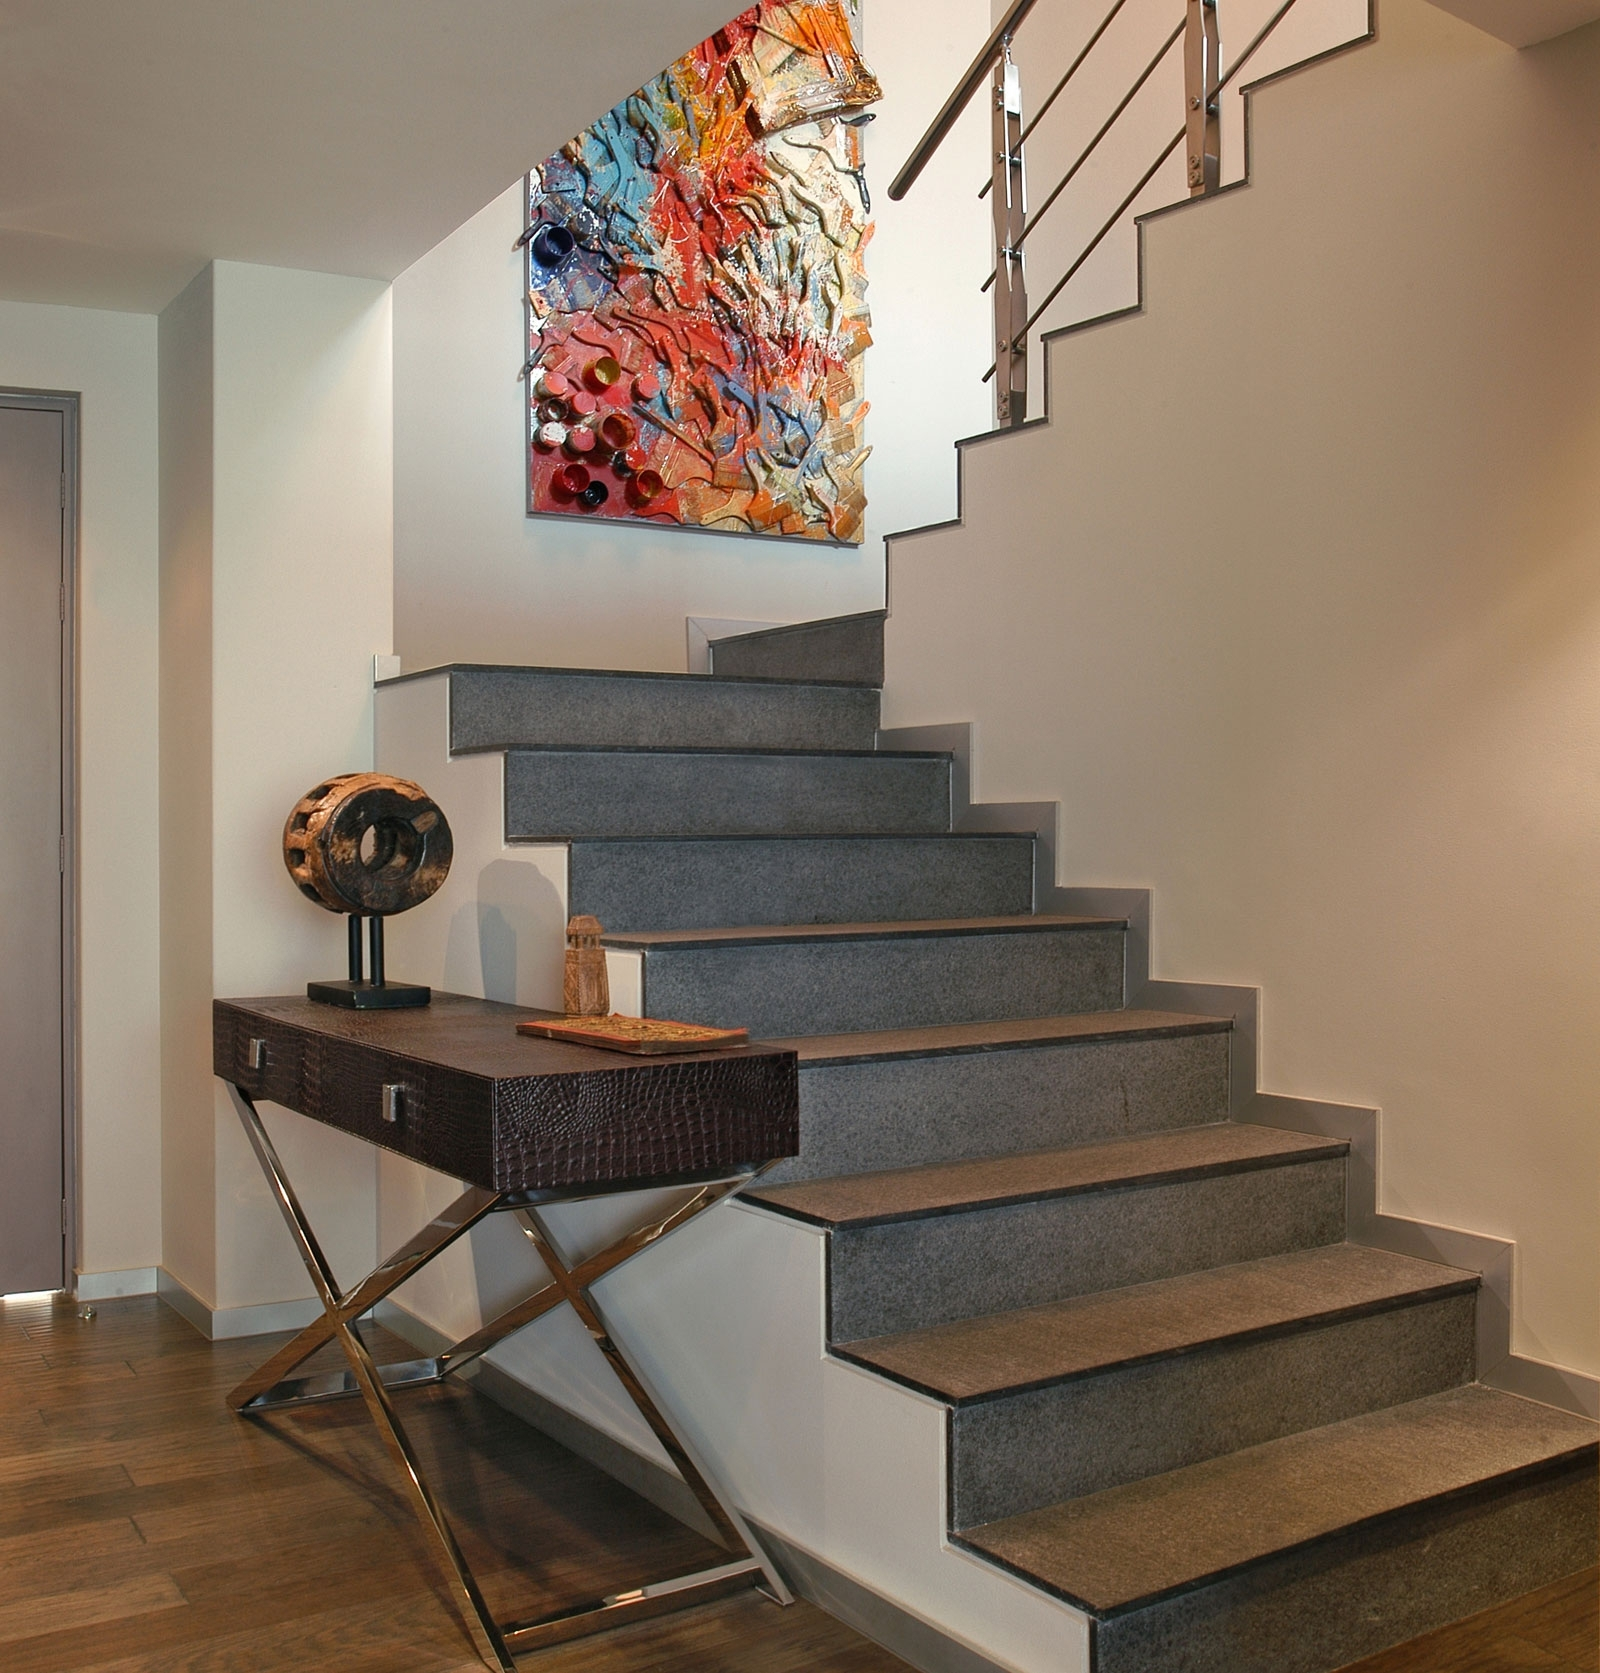 Home Decor & Furniture With Regard To Preferred Staircase Wall Accents (View 9 of 15)